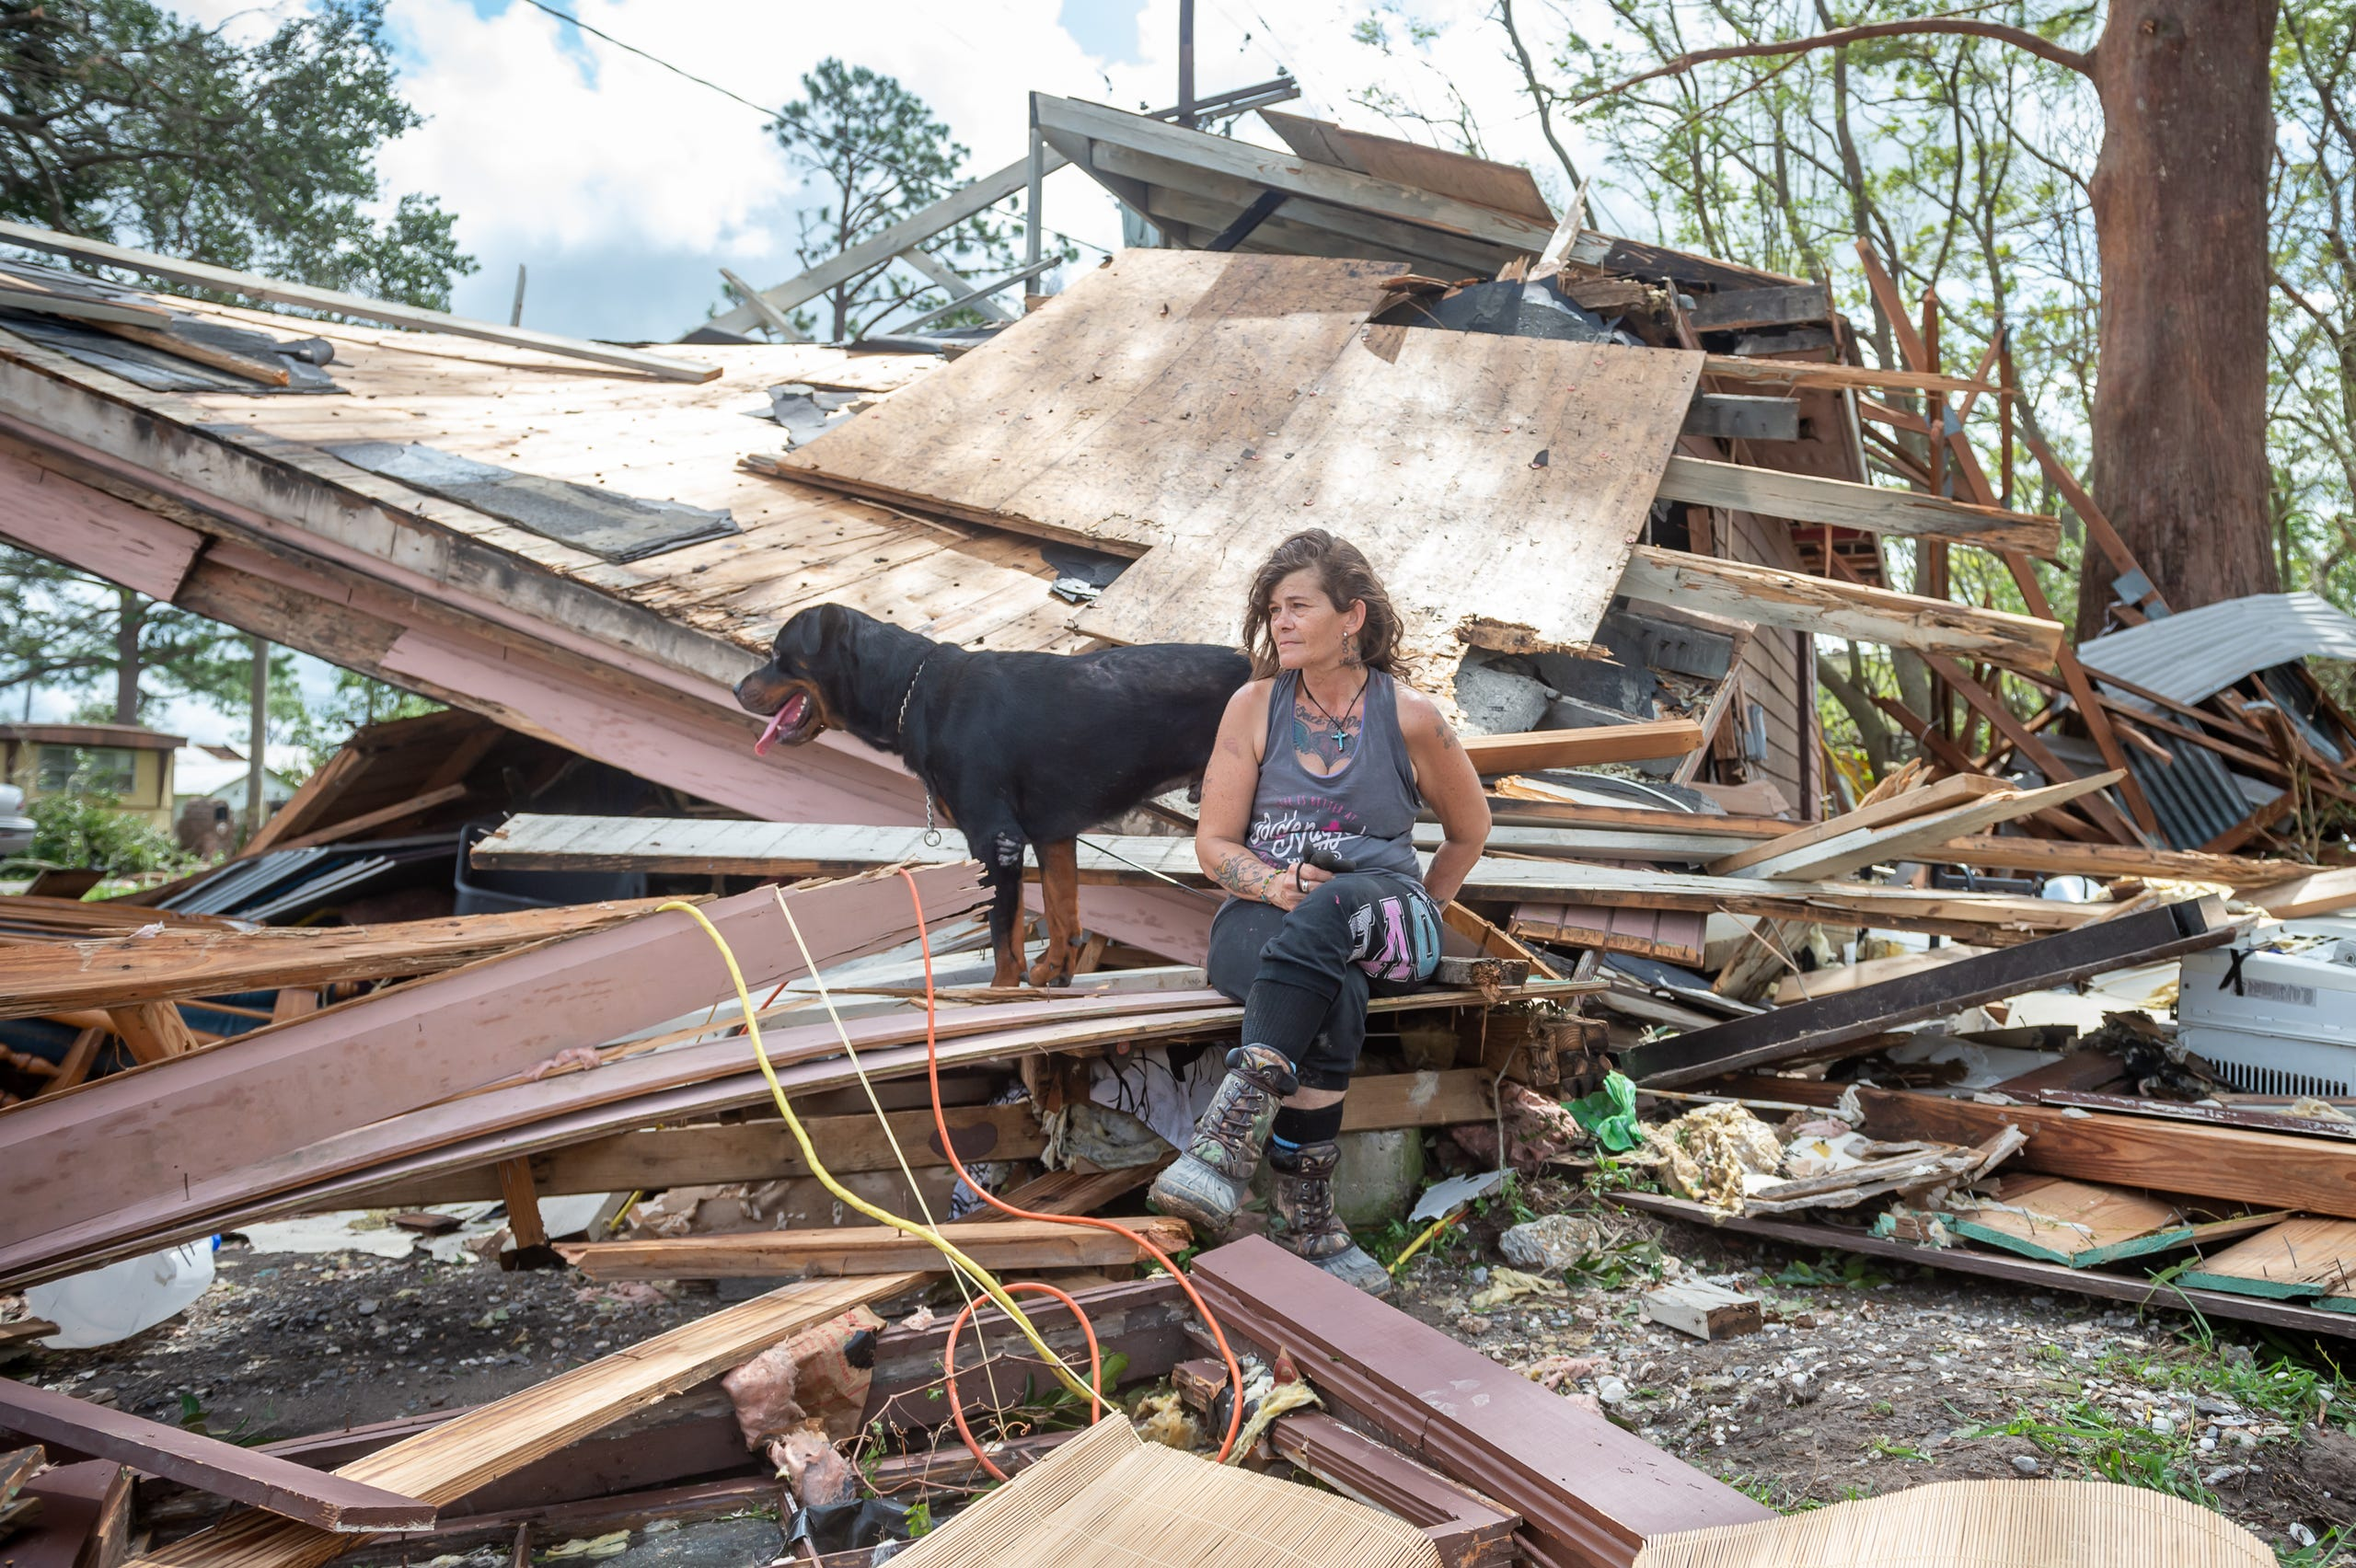 Fran Tribe and her dog Dave sit outside home destroyed by Hurricane Ida in Houma, LA. Monday, Aug. 30, 2021.